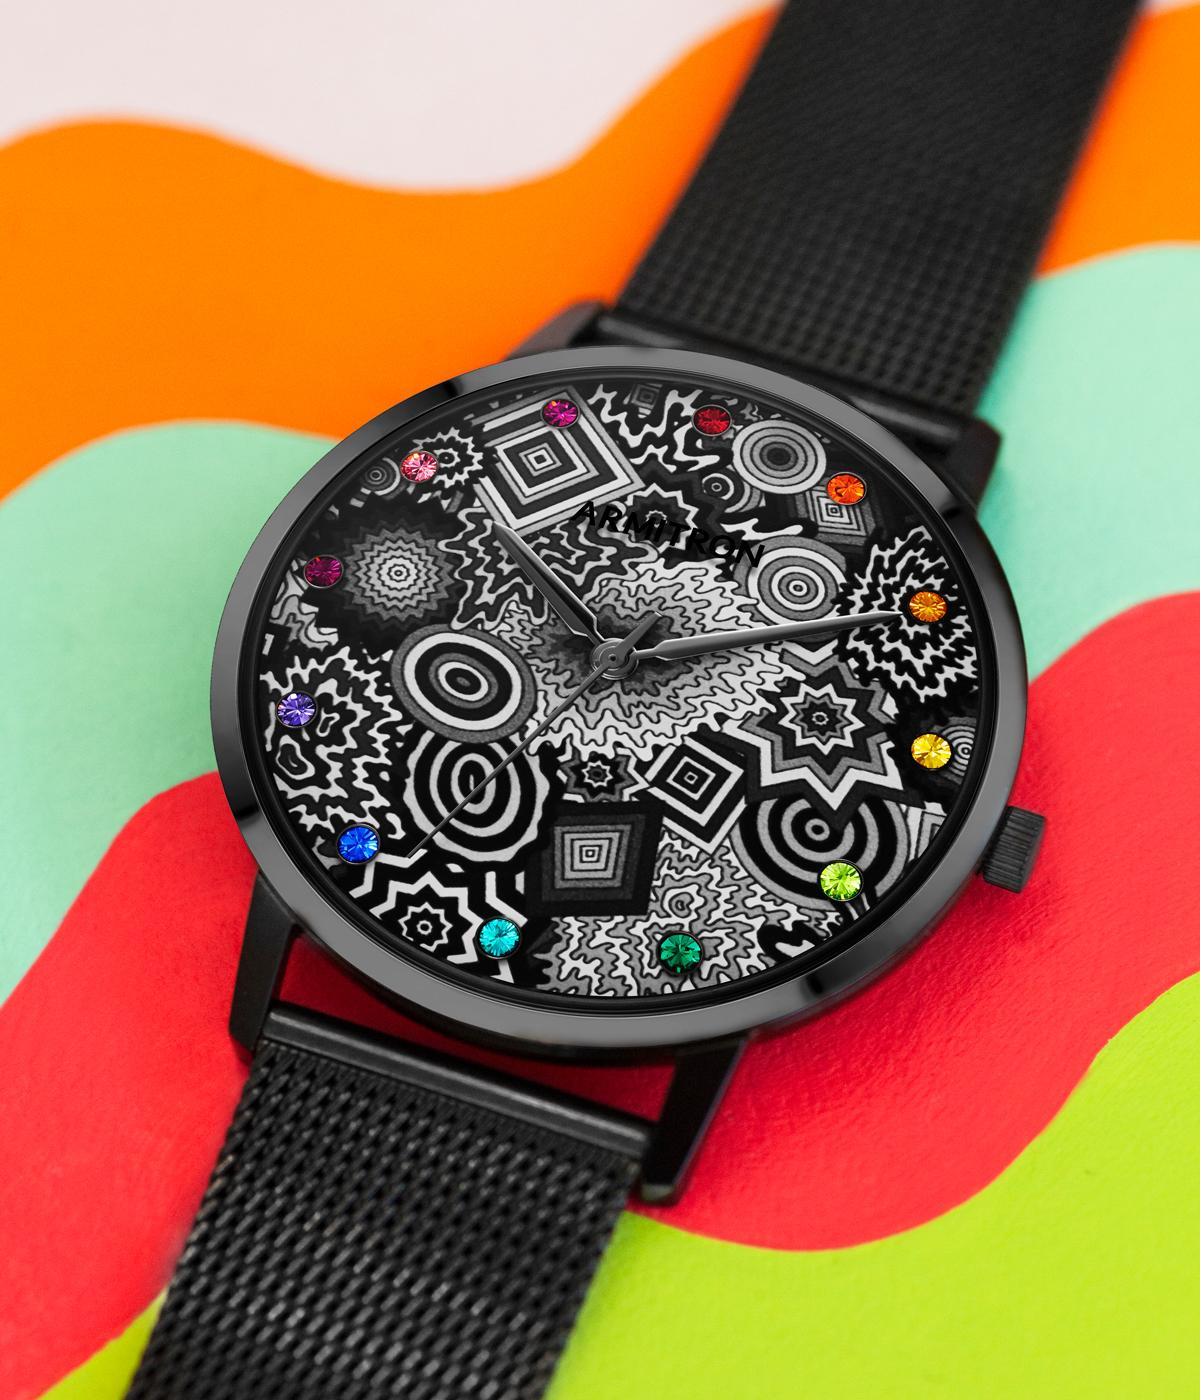 Watch with patterned face on colourful background